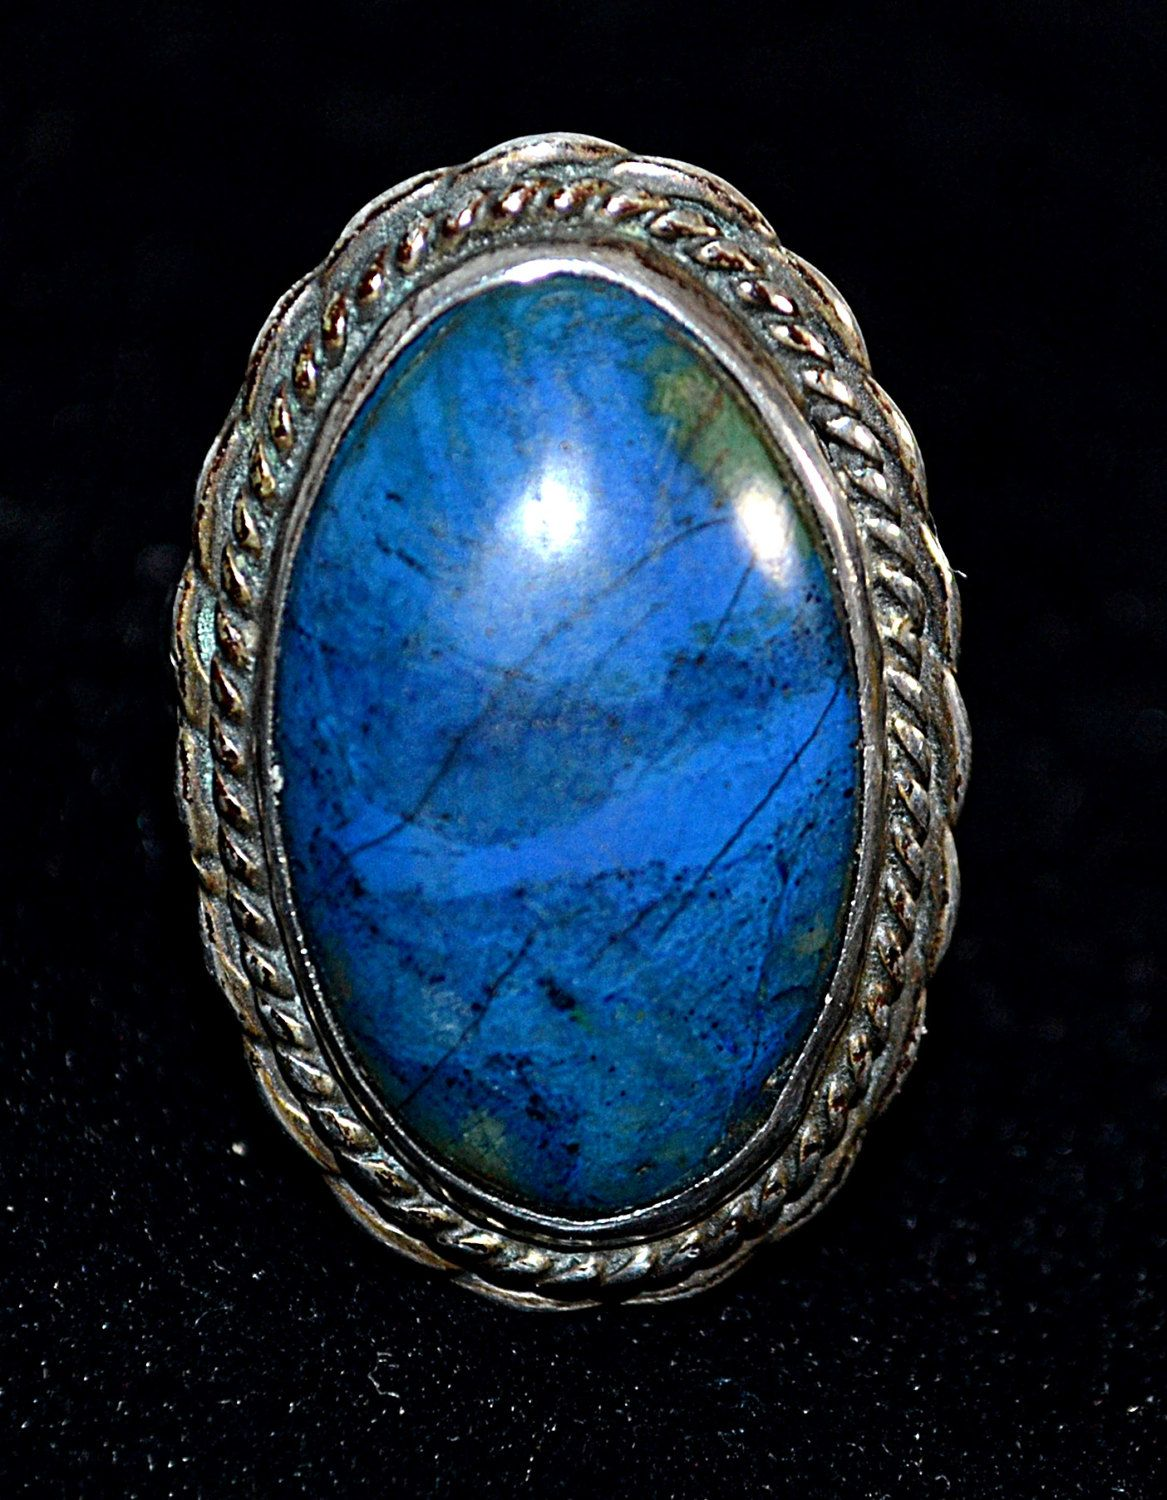 Vintage X Large Lapis And Sterling Silver Ring Sz 8 Signed SL by DodiesDrawer on Etsy